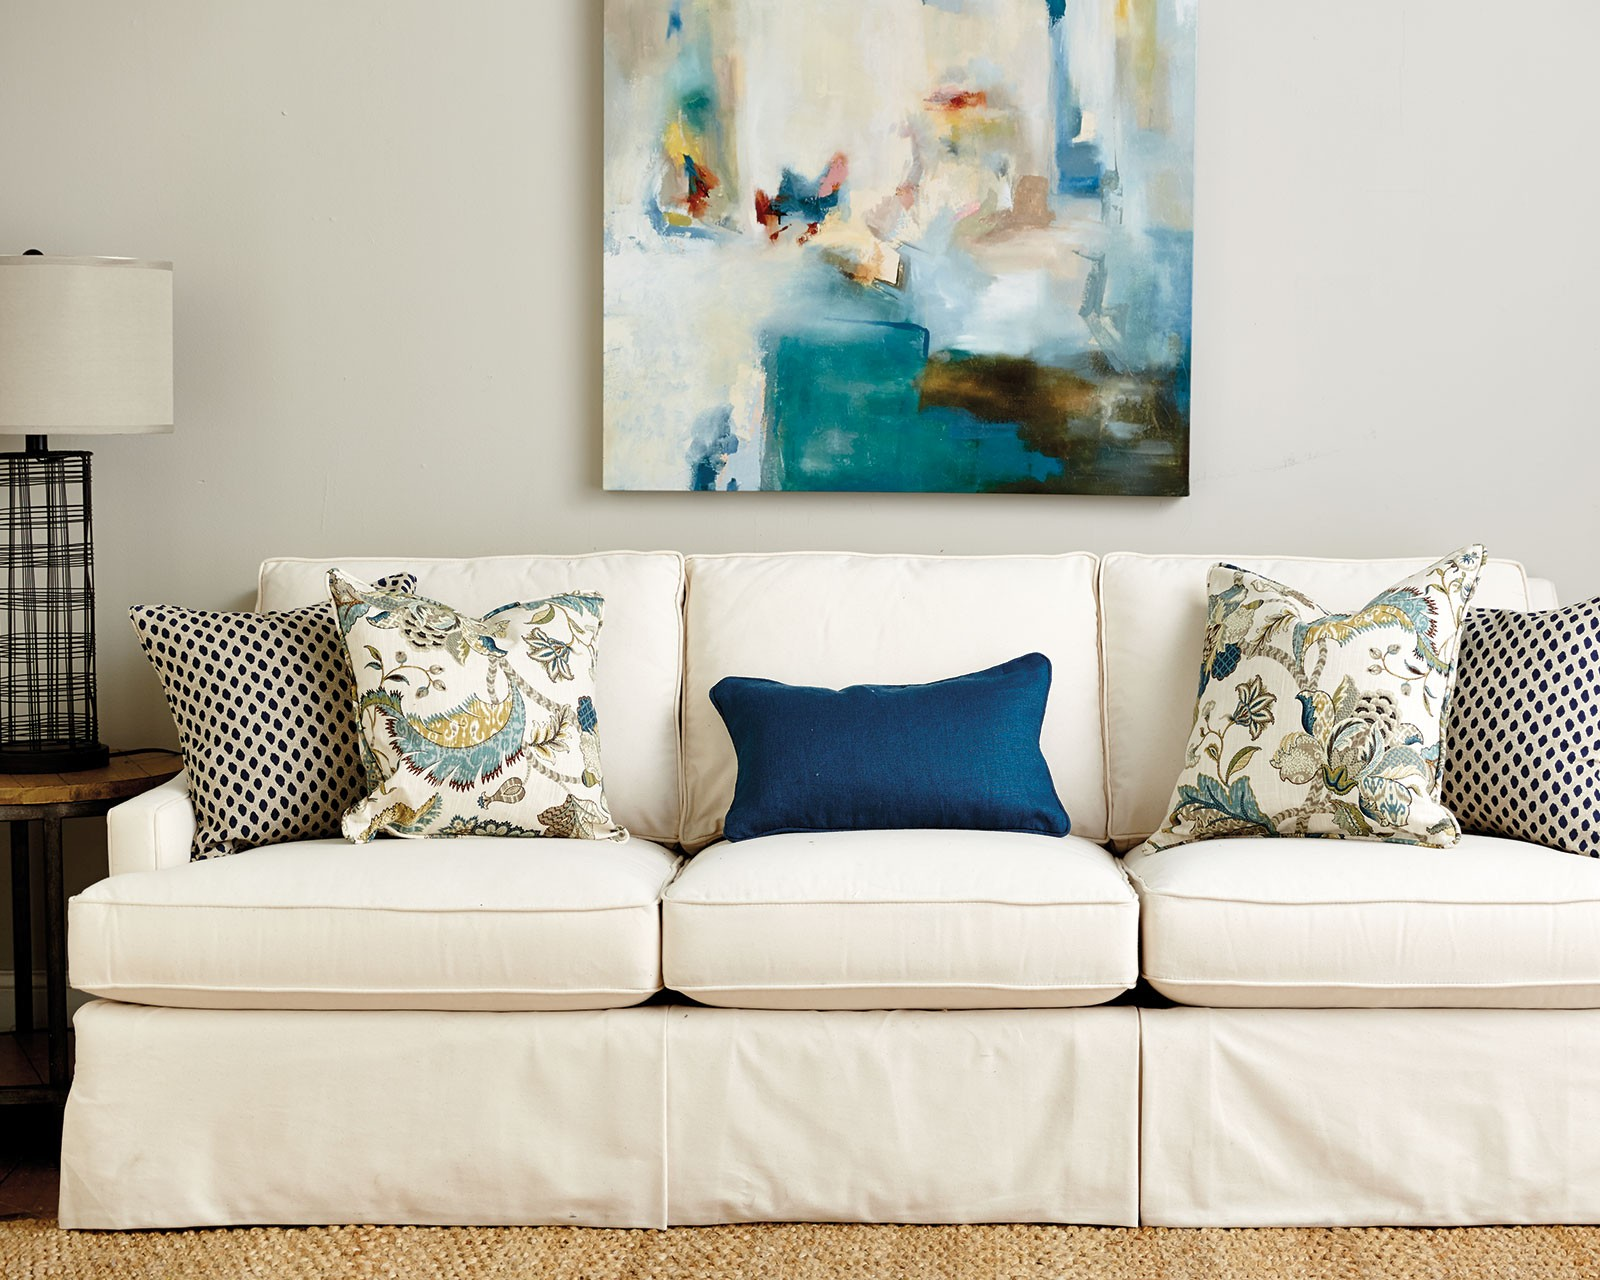 Accent Pillows for sofa Fascinating Fancy Couch Throw Pillows Modern sofa Ideas with Couch Throw Image